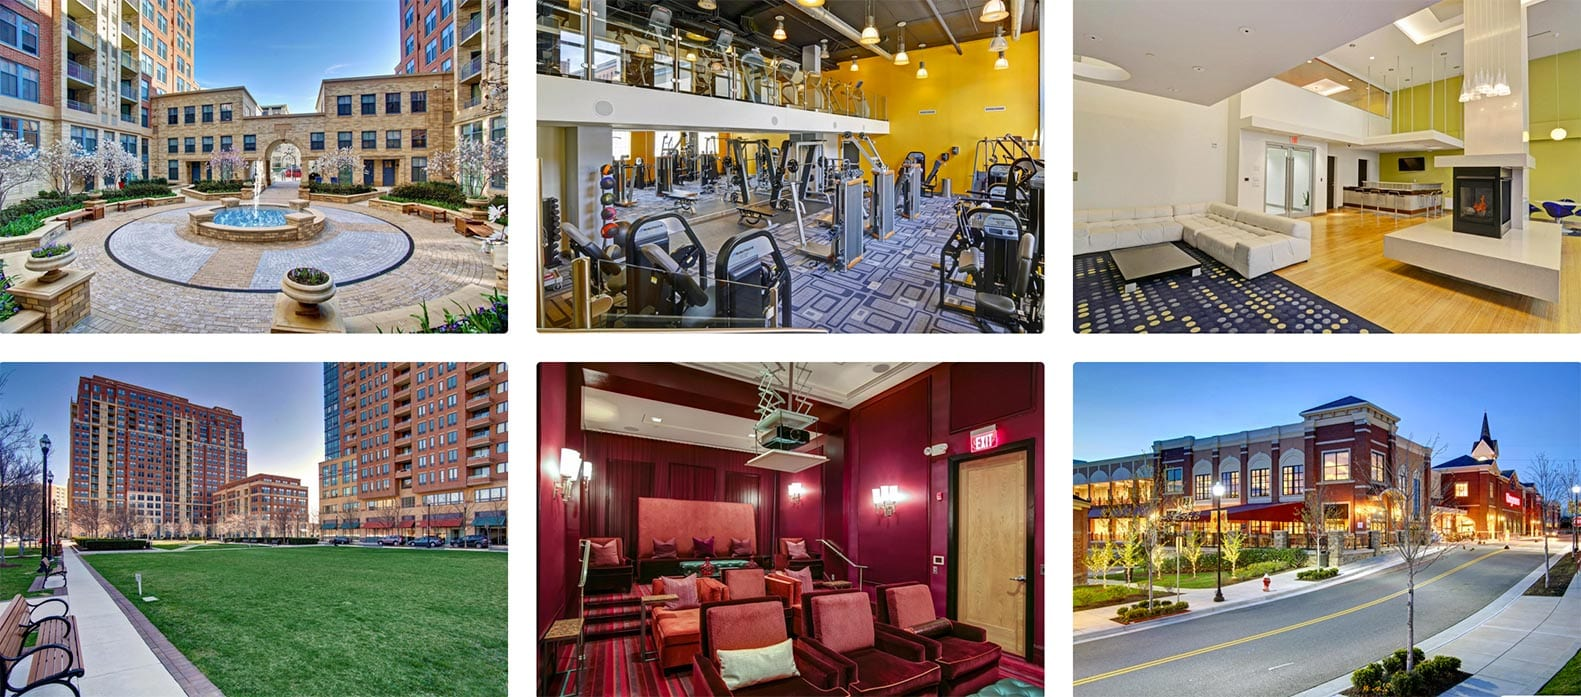 CBRE-Sample-Photography | CBRE Multi-Family Virtual Tours | CBRE Virtual Tour | CBRE 360 Photography